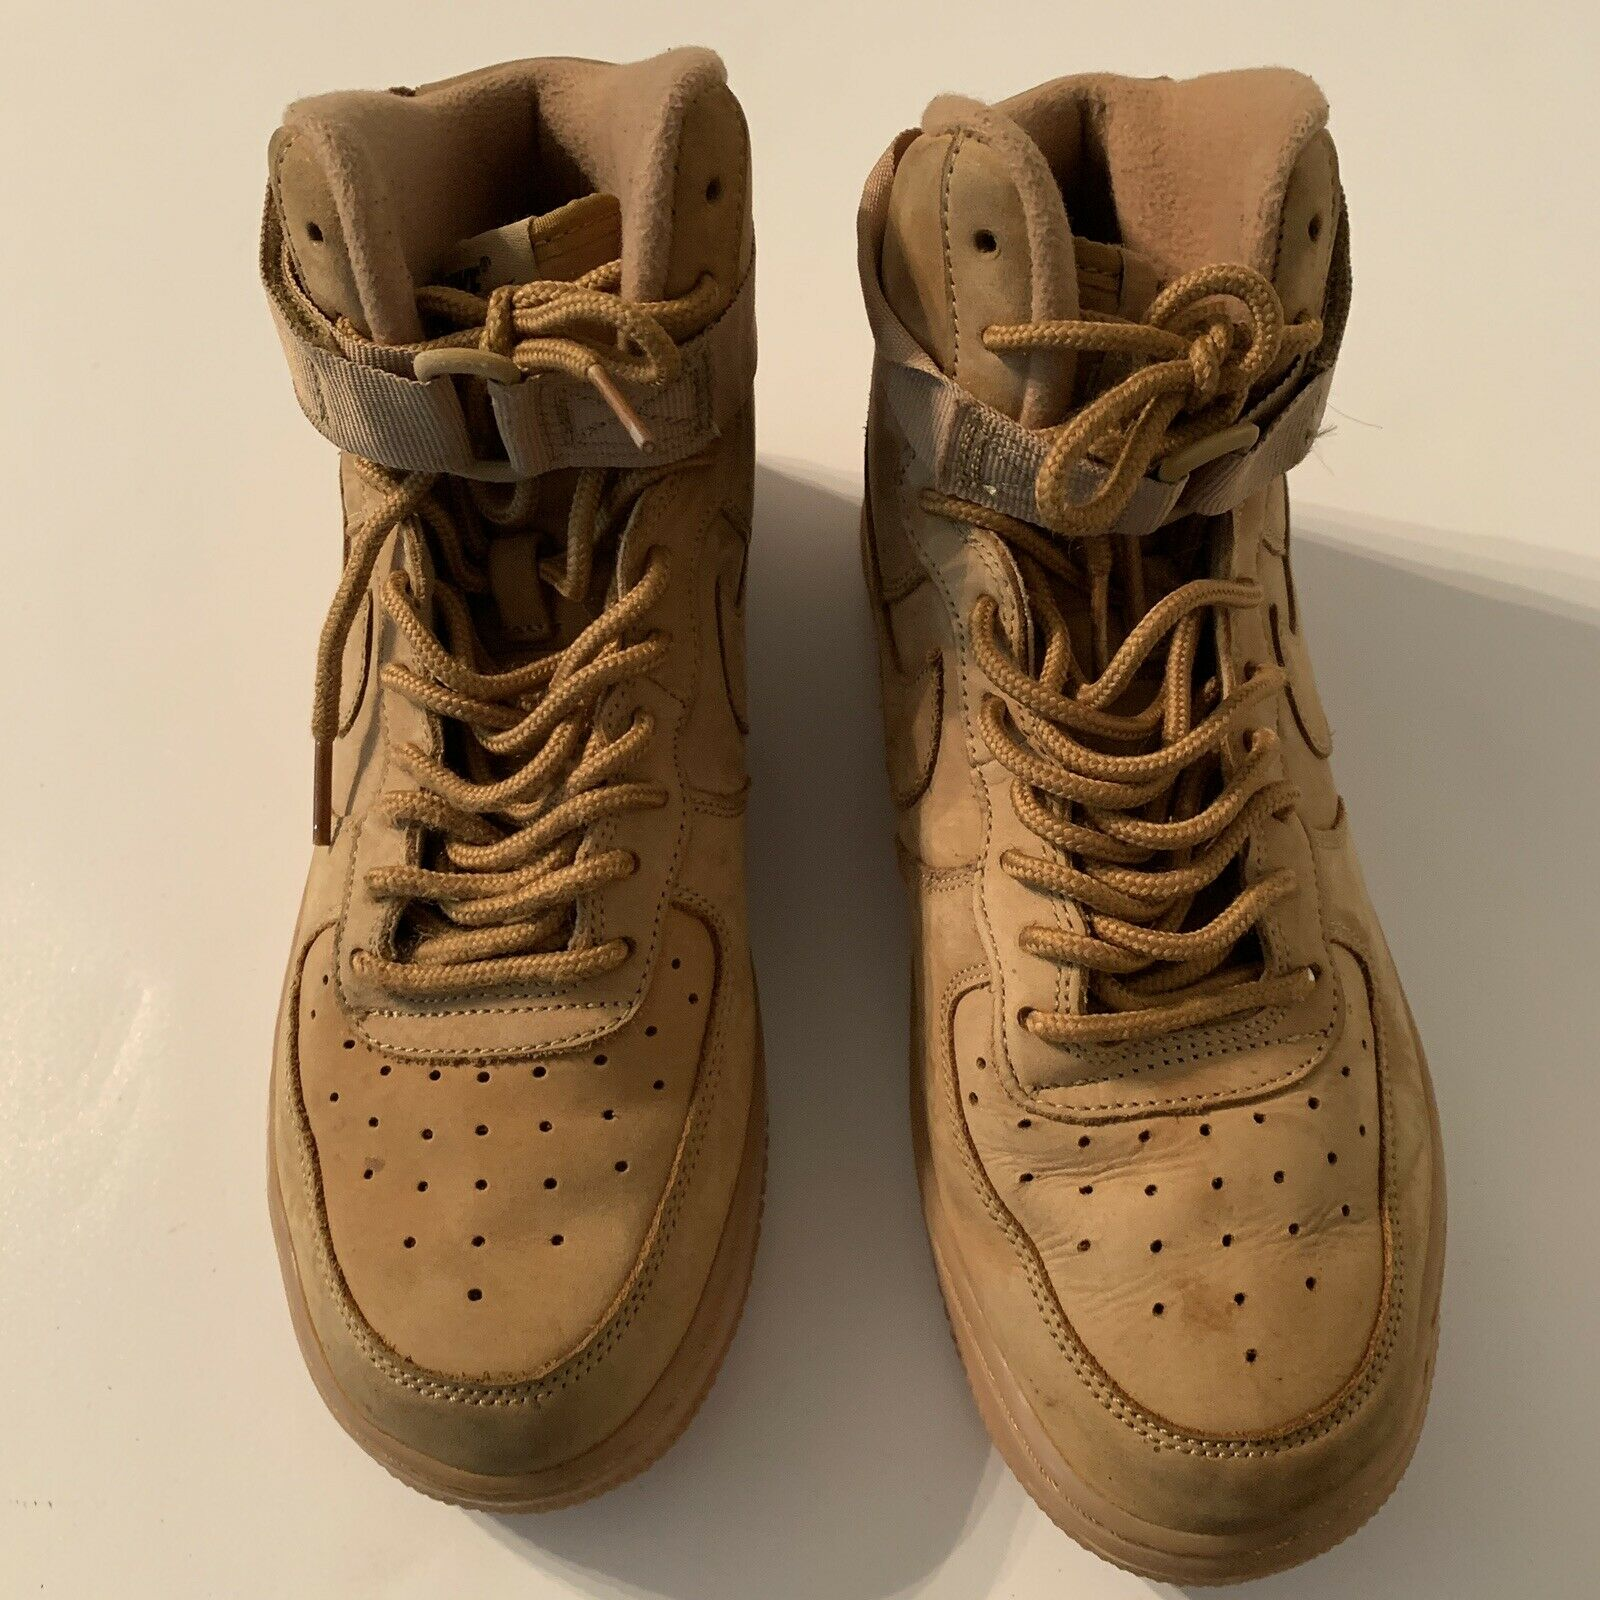 Youth Size 6.5Y Flax Wheat Nike Air Force 1 High LV8 Leather Shoes 807617 200